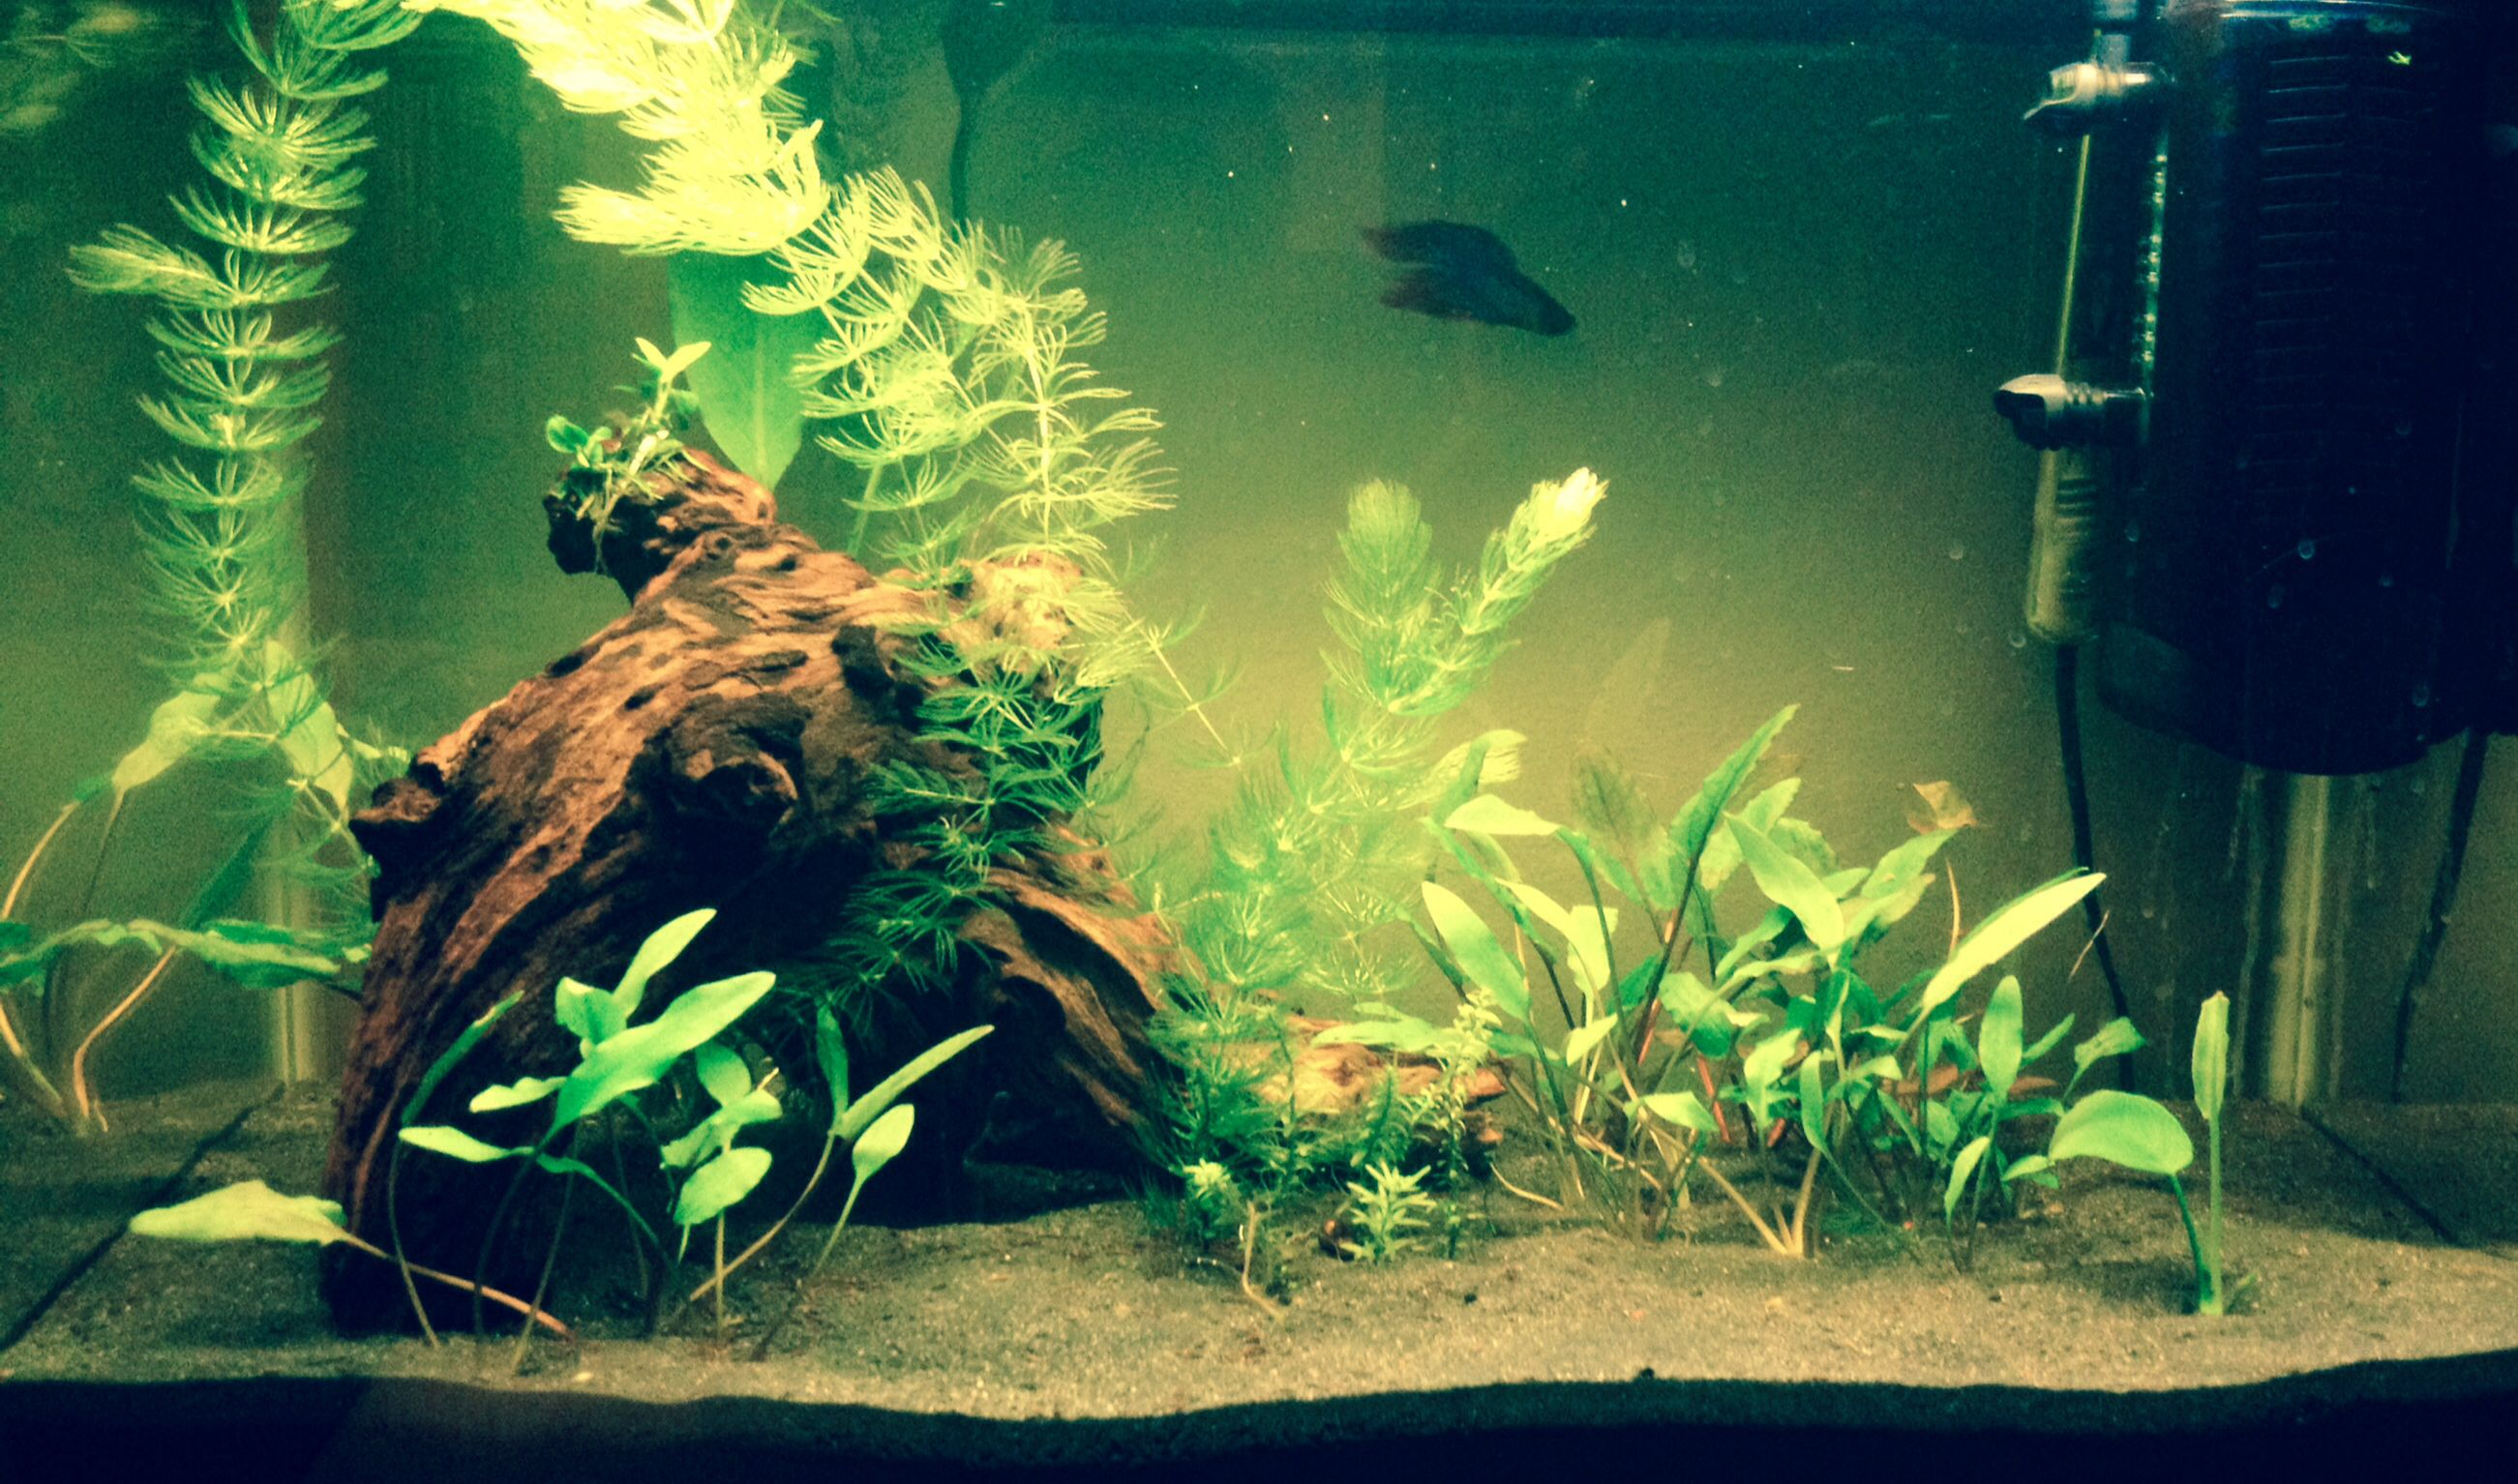 Betta fish stays eerily still when looking right at the Clown Loach